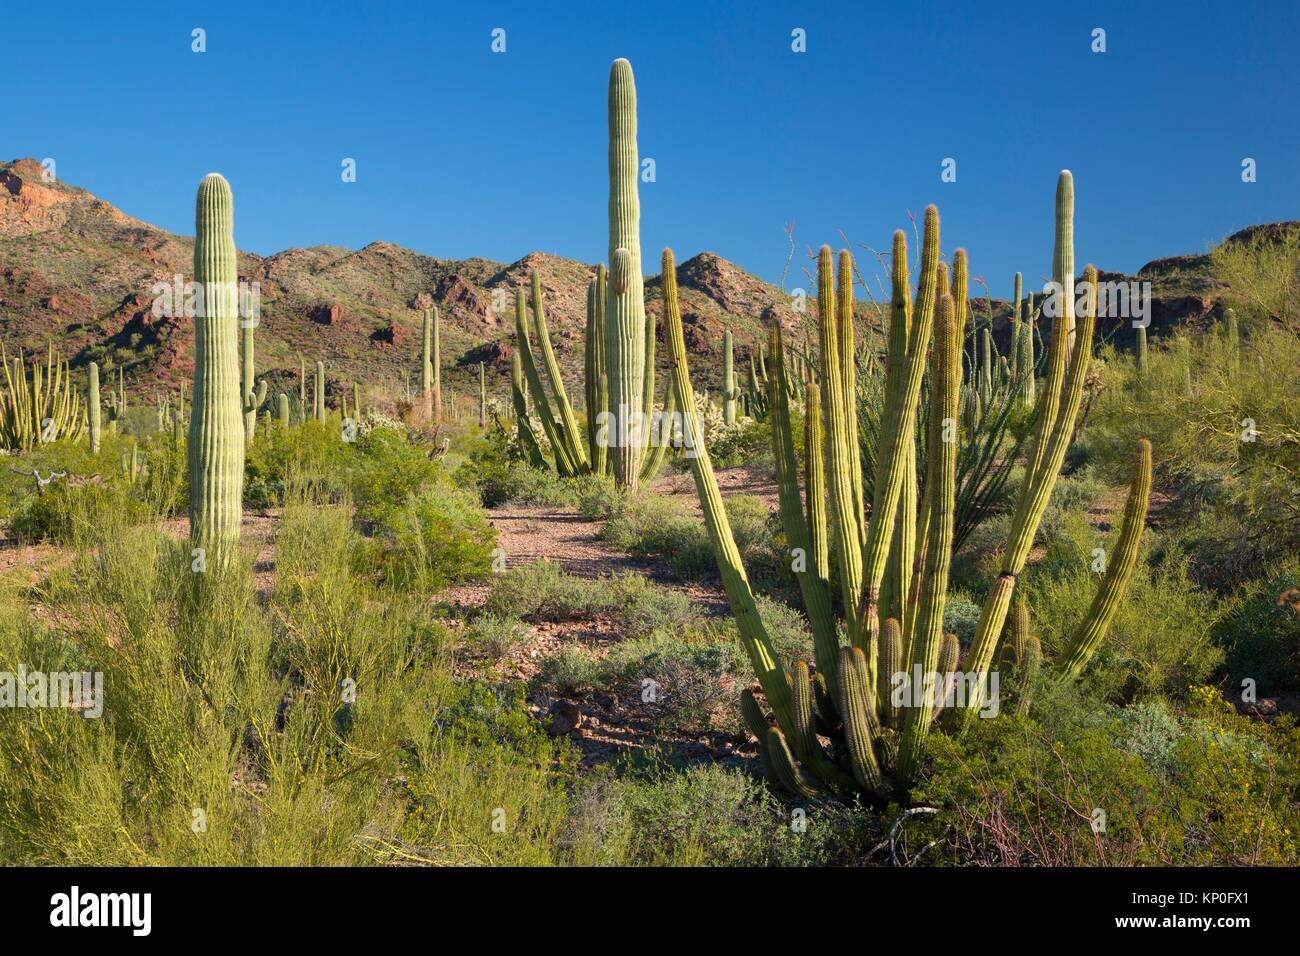 Desert with saguaro and organ pipe cactus along Ajo Mountain Drive, Organ Pipe Cactus National Monument, Arizona. - Stock Image